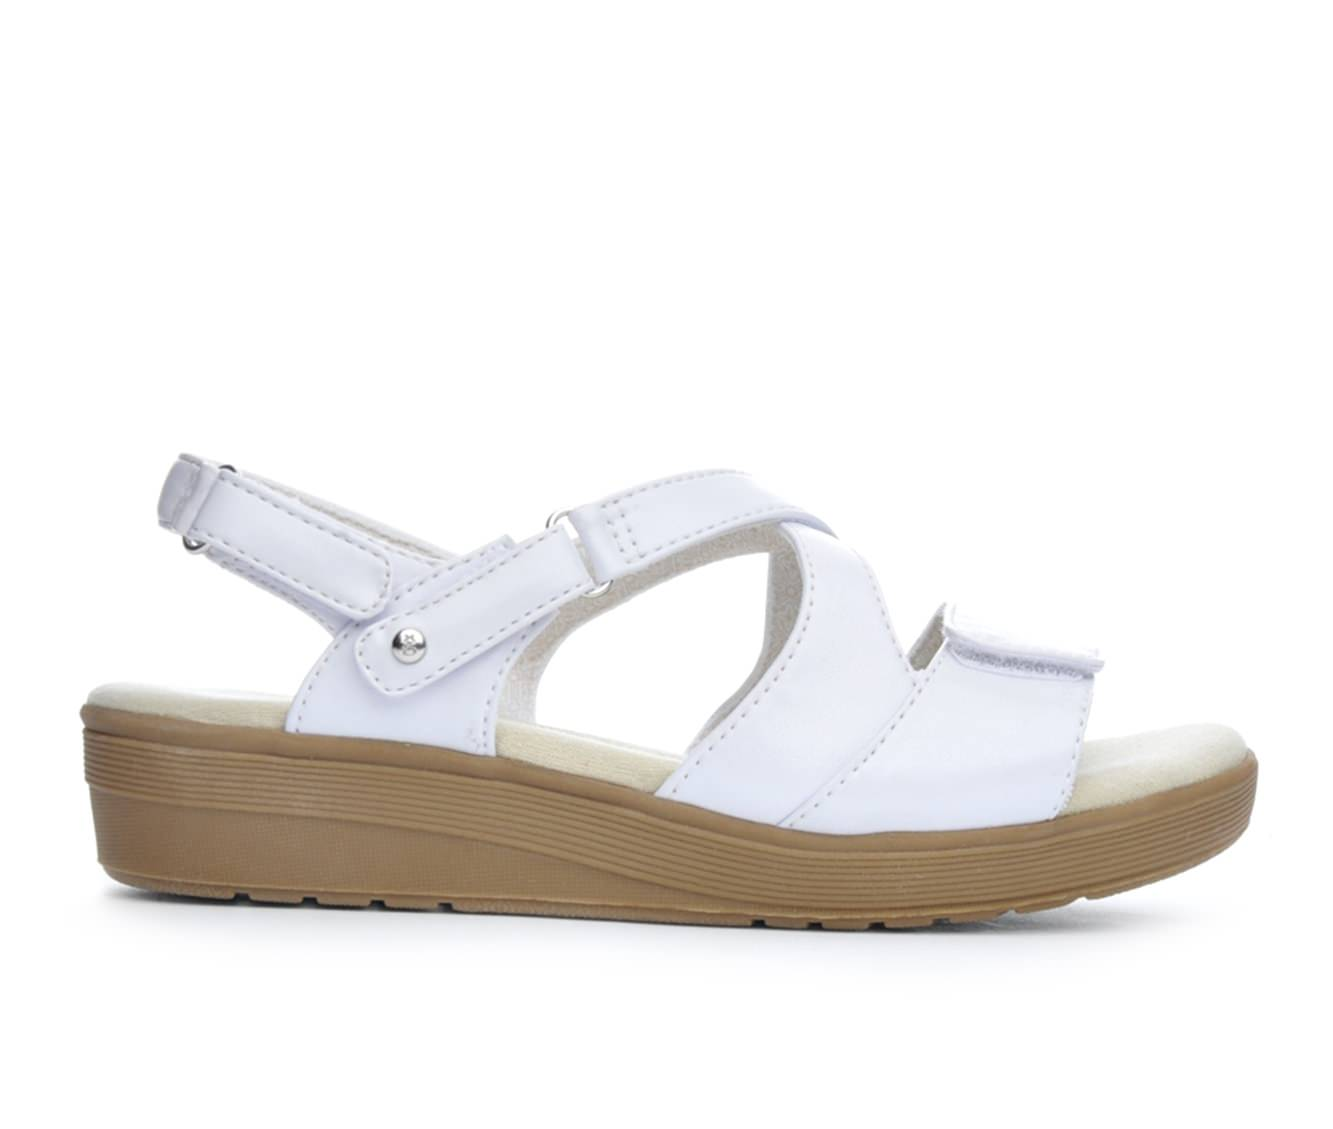 Women's Grasshoppers Cherry Wedge Sandals (White)